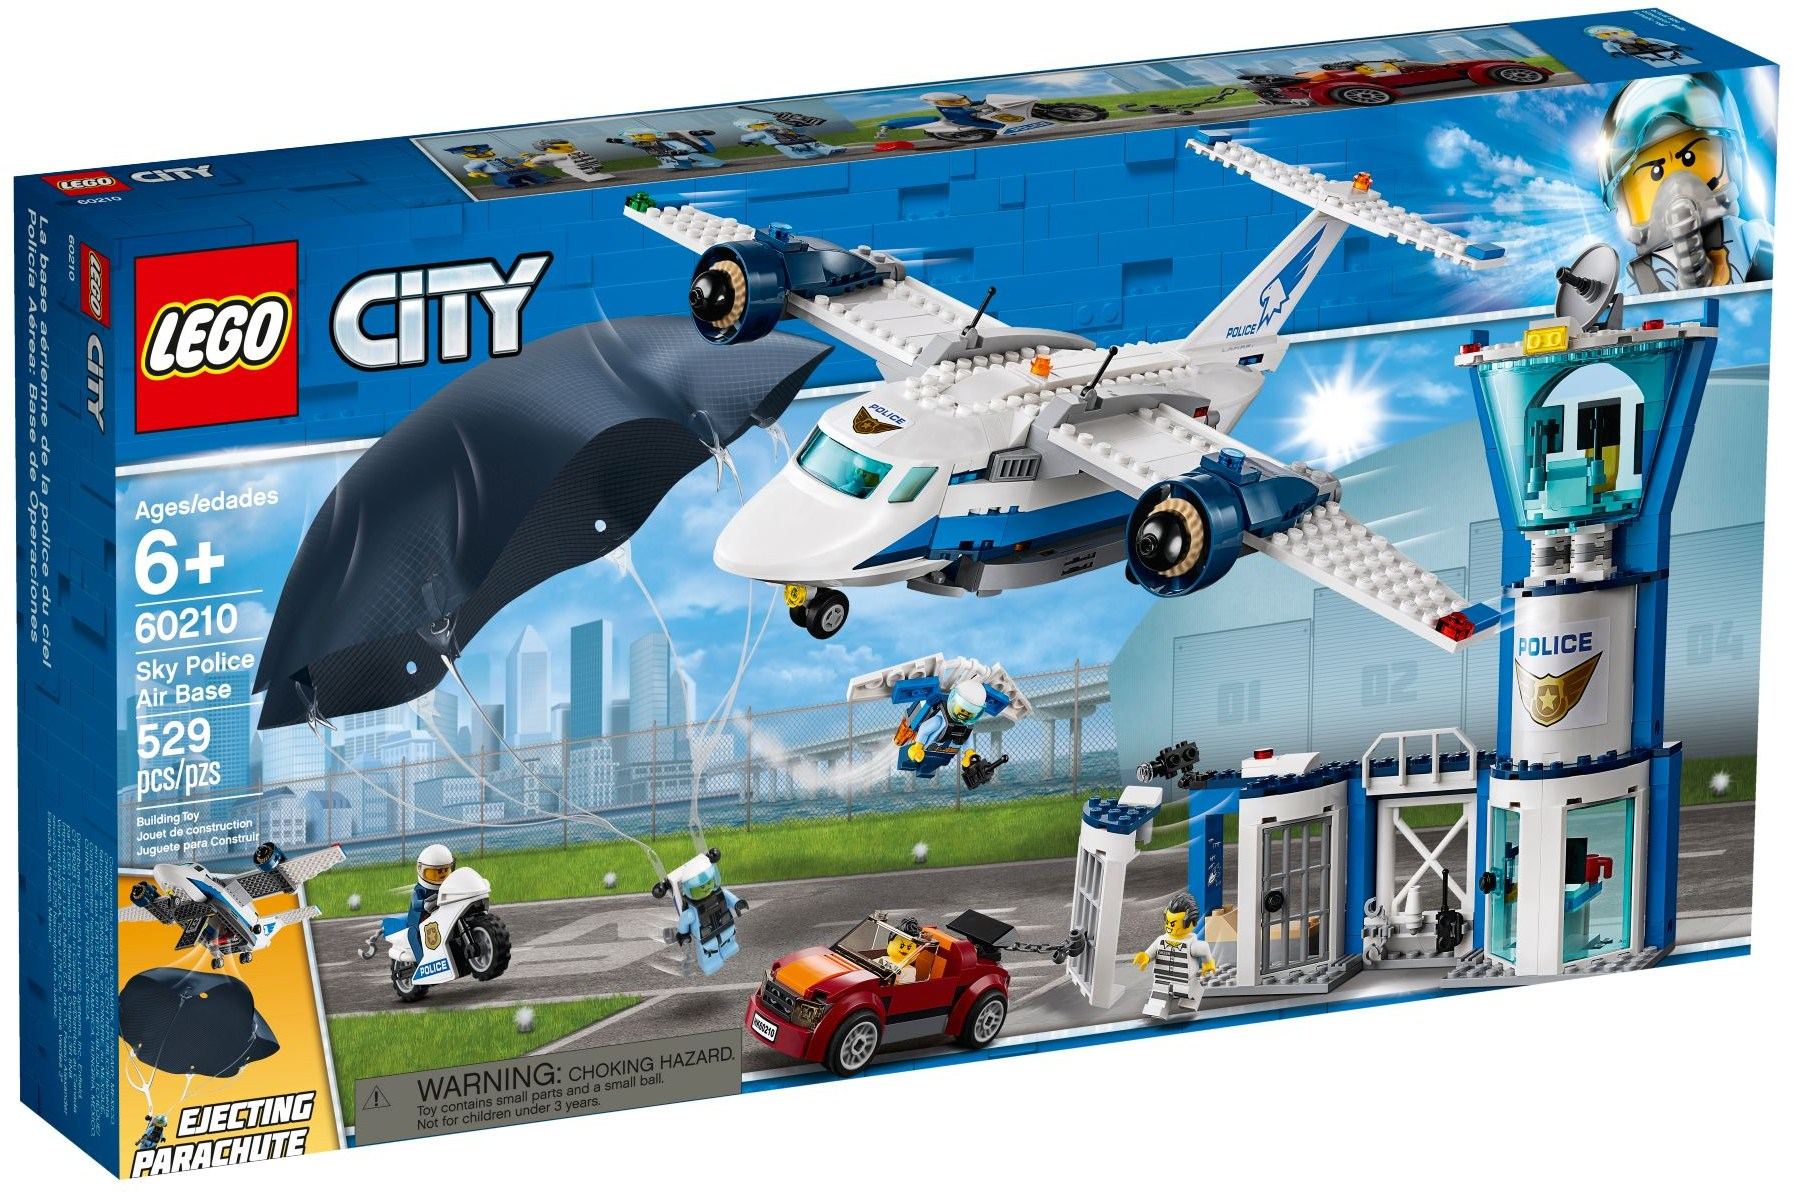 LEGO Town Sets: 60210 City Air Base NEW